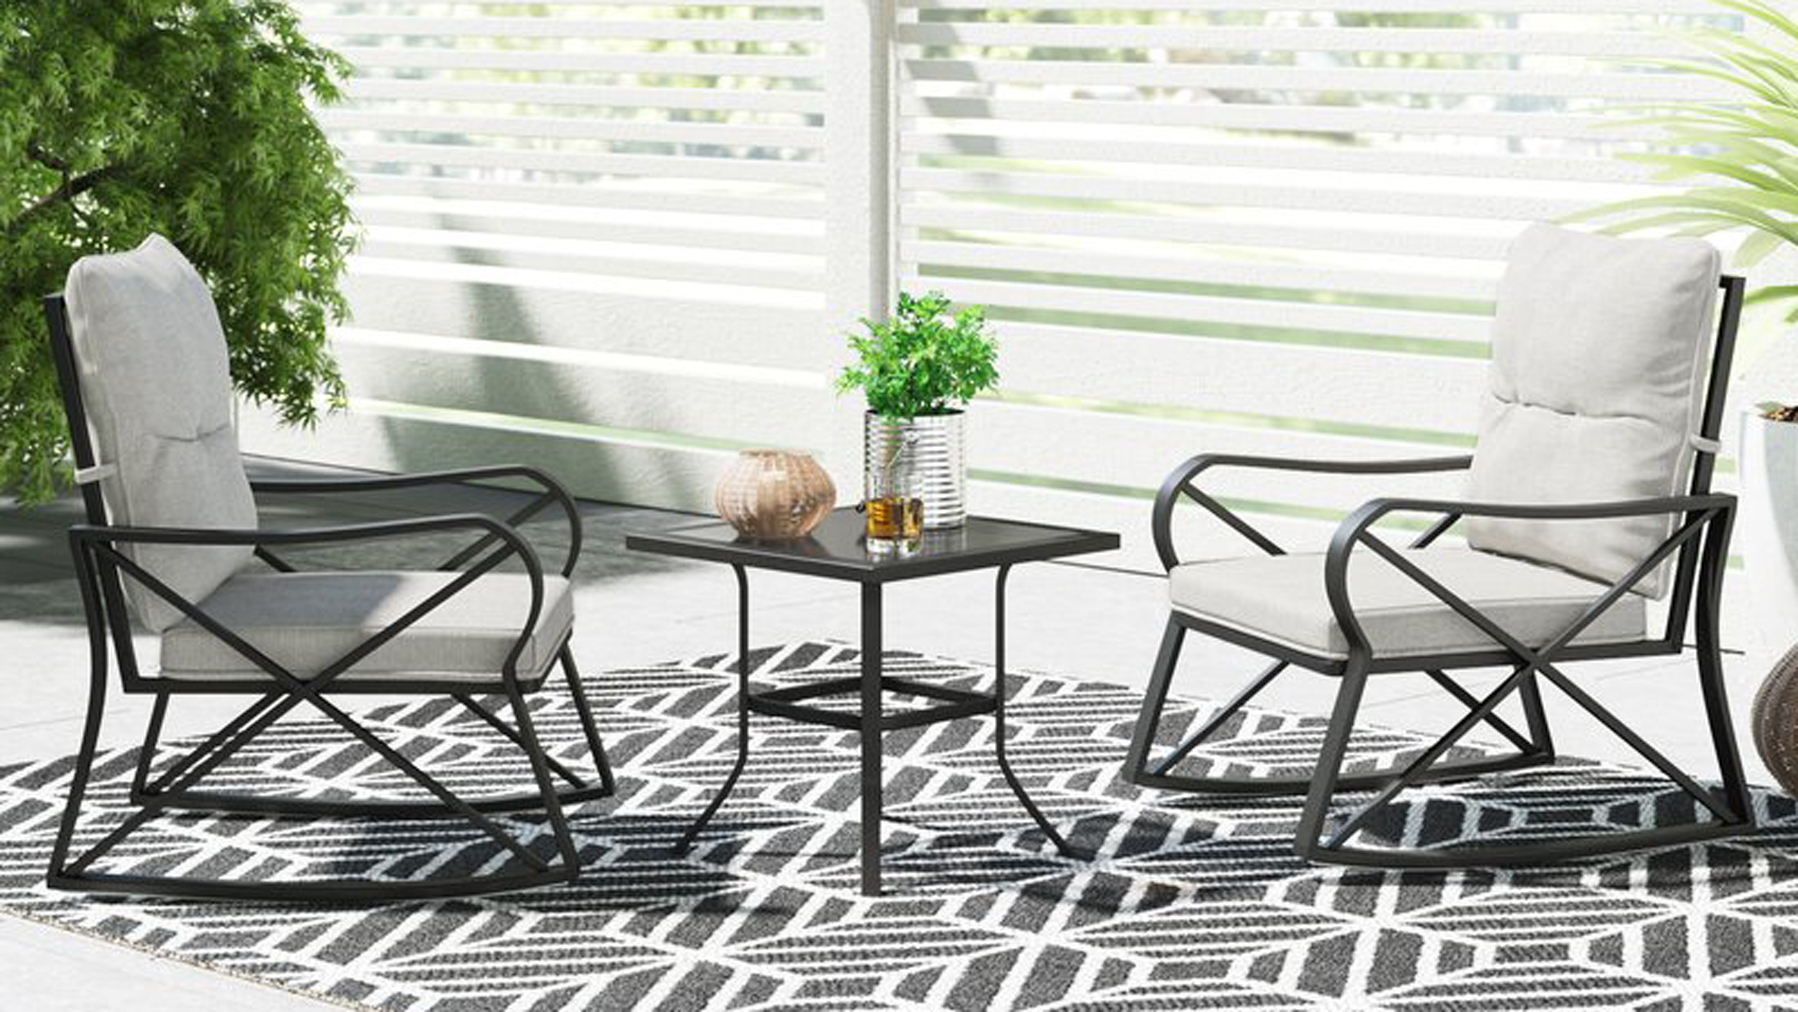 [%wayfair Labor Day Sale: 70% Off These Top Buys Until For Most Recent Hofstetter Armchairs|hofstetter Armchairs Inside Popular Wayfair Labor Day Sale: 70% Off These Top Buys Until|best And Newest Hofstetter Armchairs Pertaining To Wayfair Labor Day Sale: 70% Off These Top Buys Until|2020 Wayfair Labor Day Sale: 70% Off These Top Buys Until Regarding Hofstetter Armchairs%] (View 14 of 20)